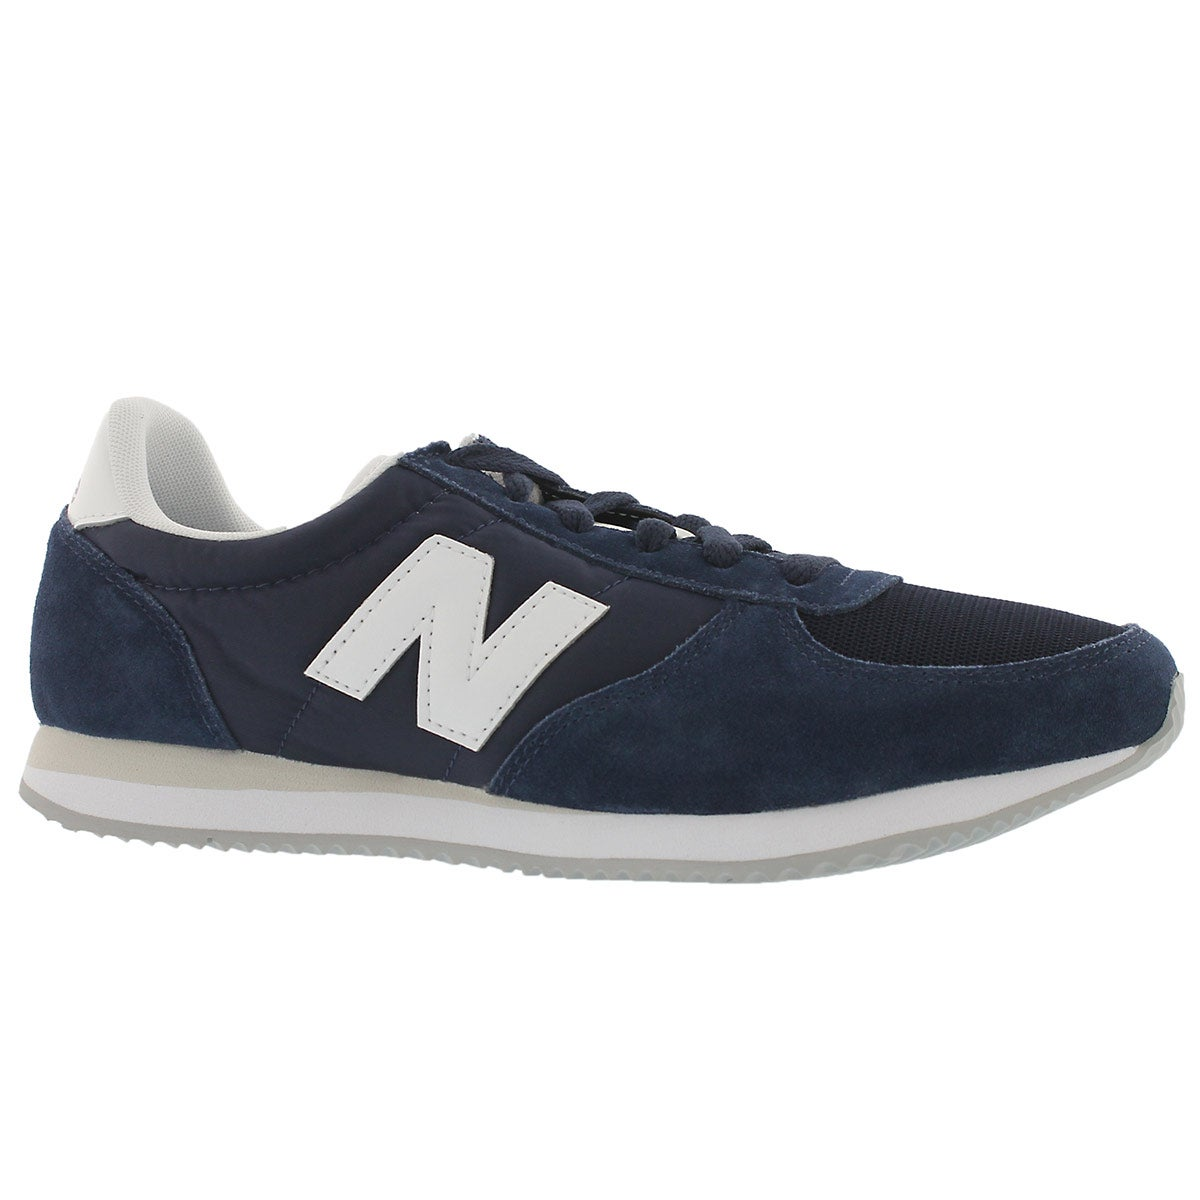 Men's 220 blue/white lace up sneakers